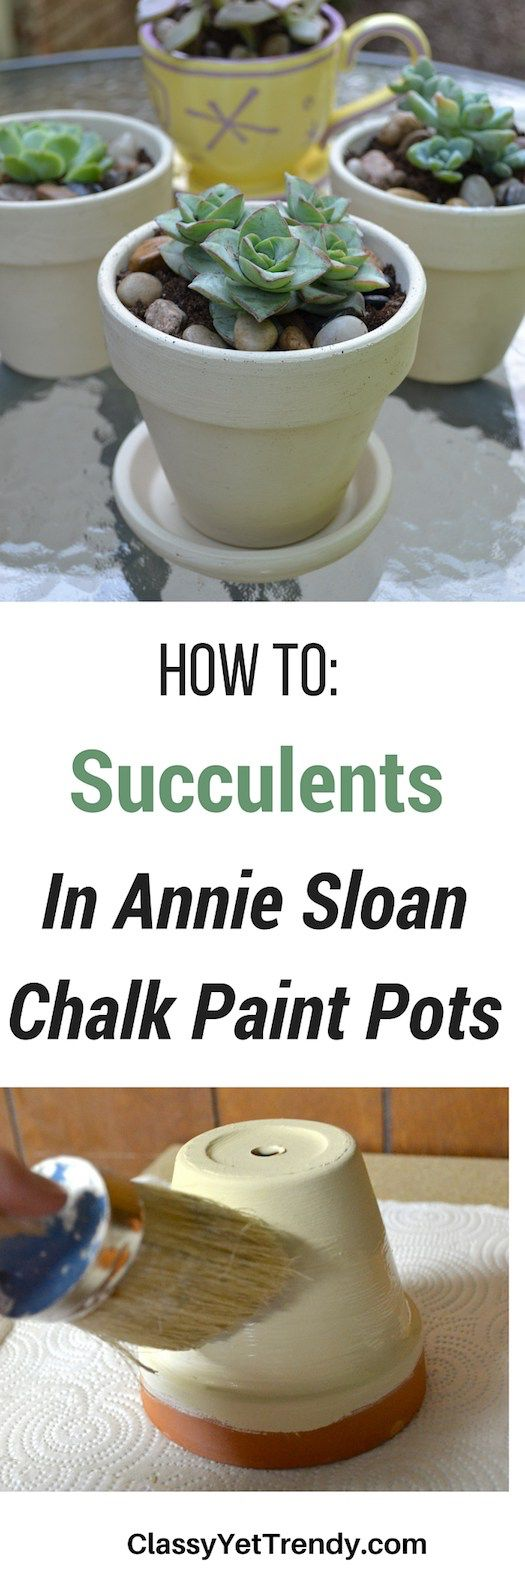 How To: Succulents In Chalk Paint Pots - tutorial on how to paint terra cotta pots with Annie Sloan Chalk Paint & how to plant succuluent plants.